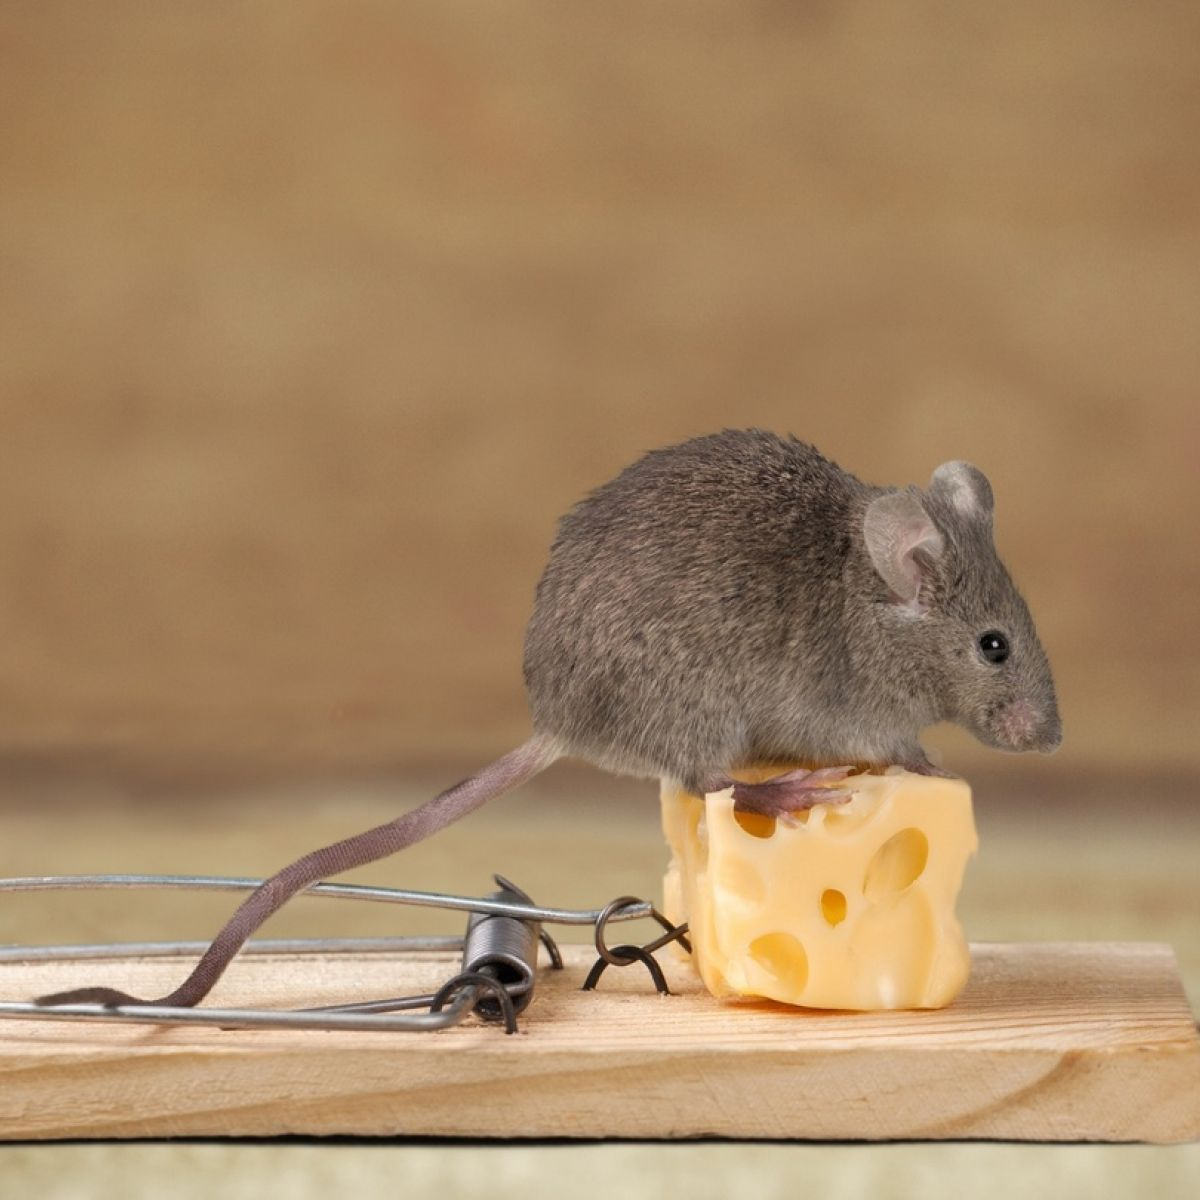 Our Neighbour Has Mice How Can We Stop Them Getting Into Our House